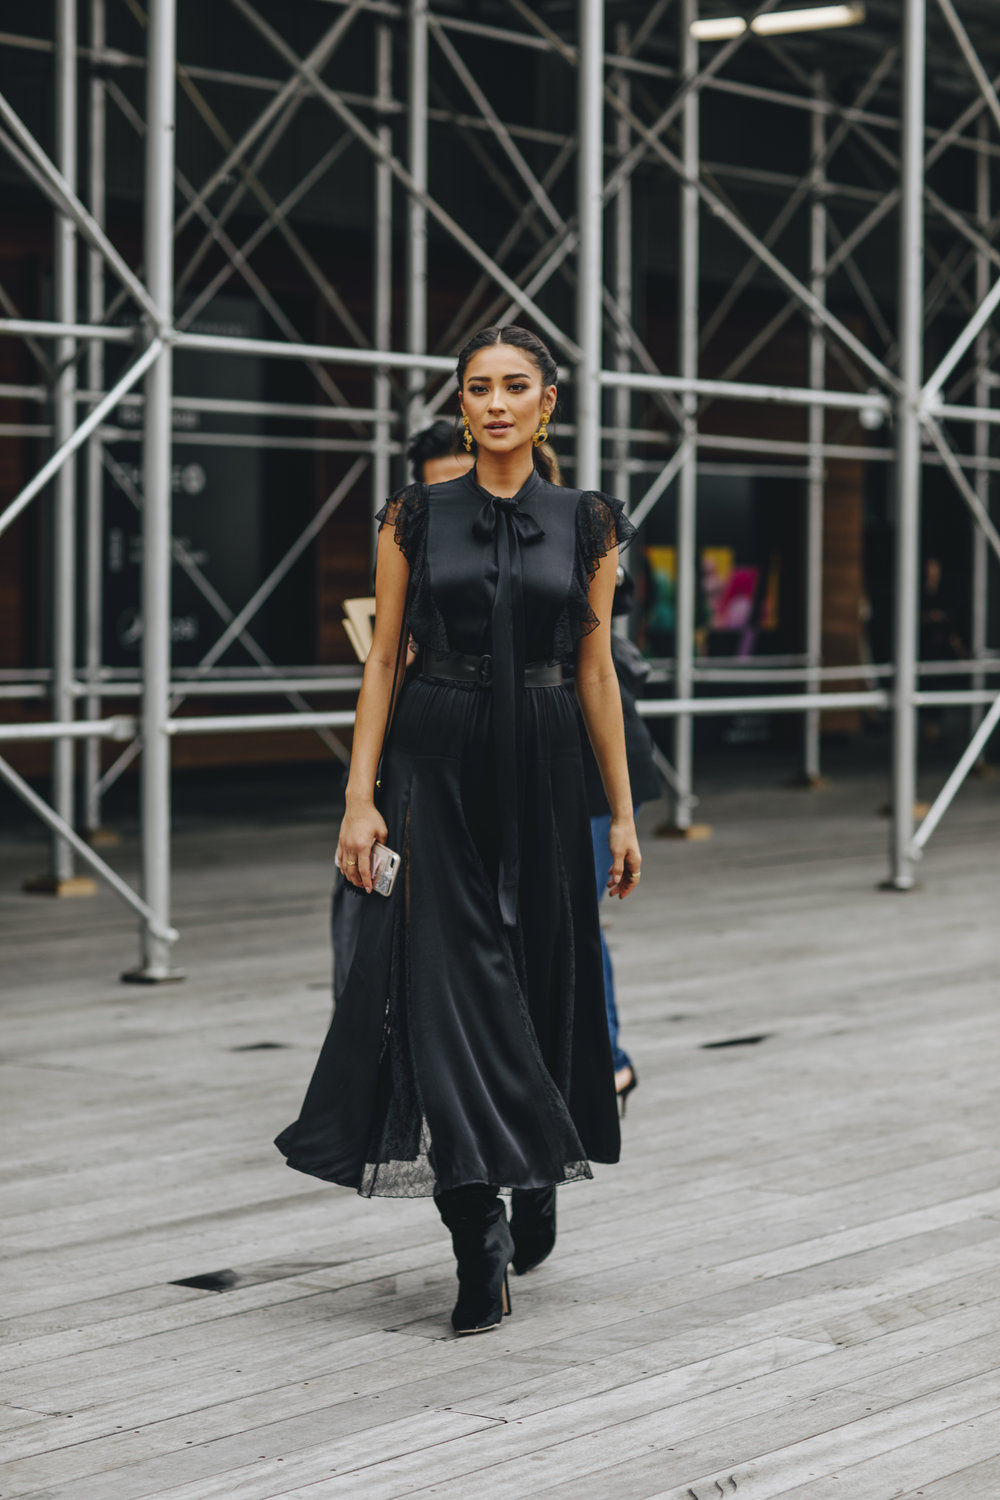 NYFW SS19 - DAY 6 - Shay Mitchell 3.jpg